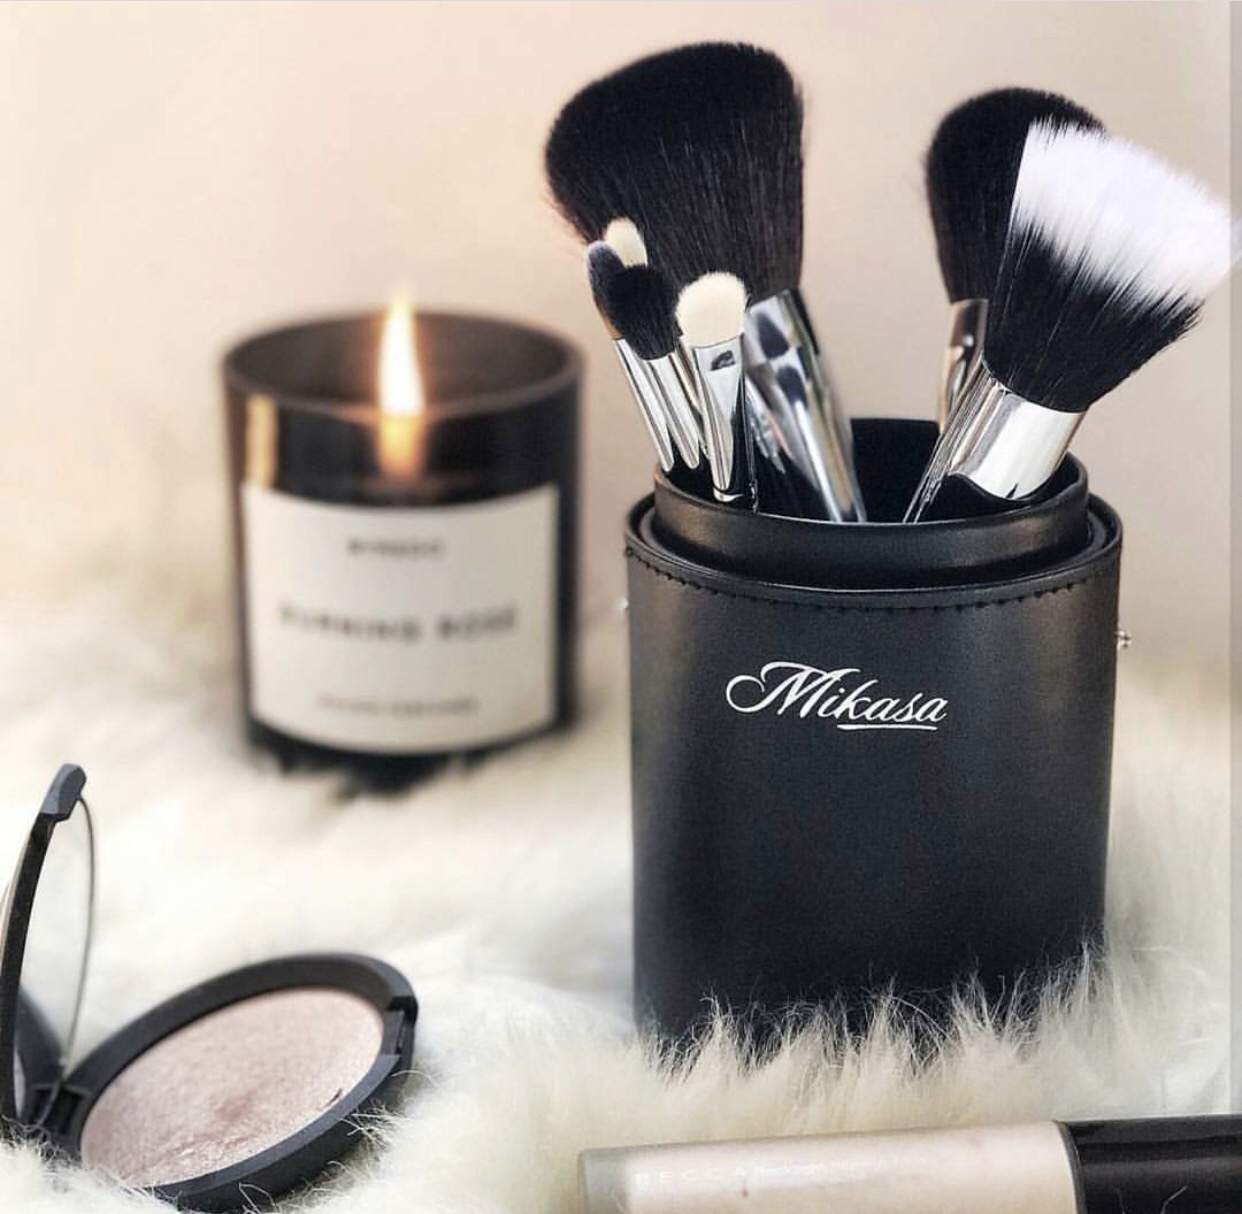 Mikasa Beauty Brush Review